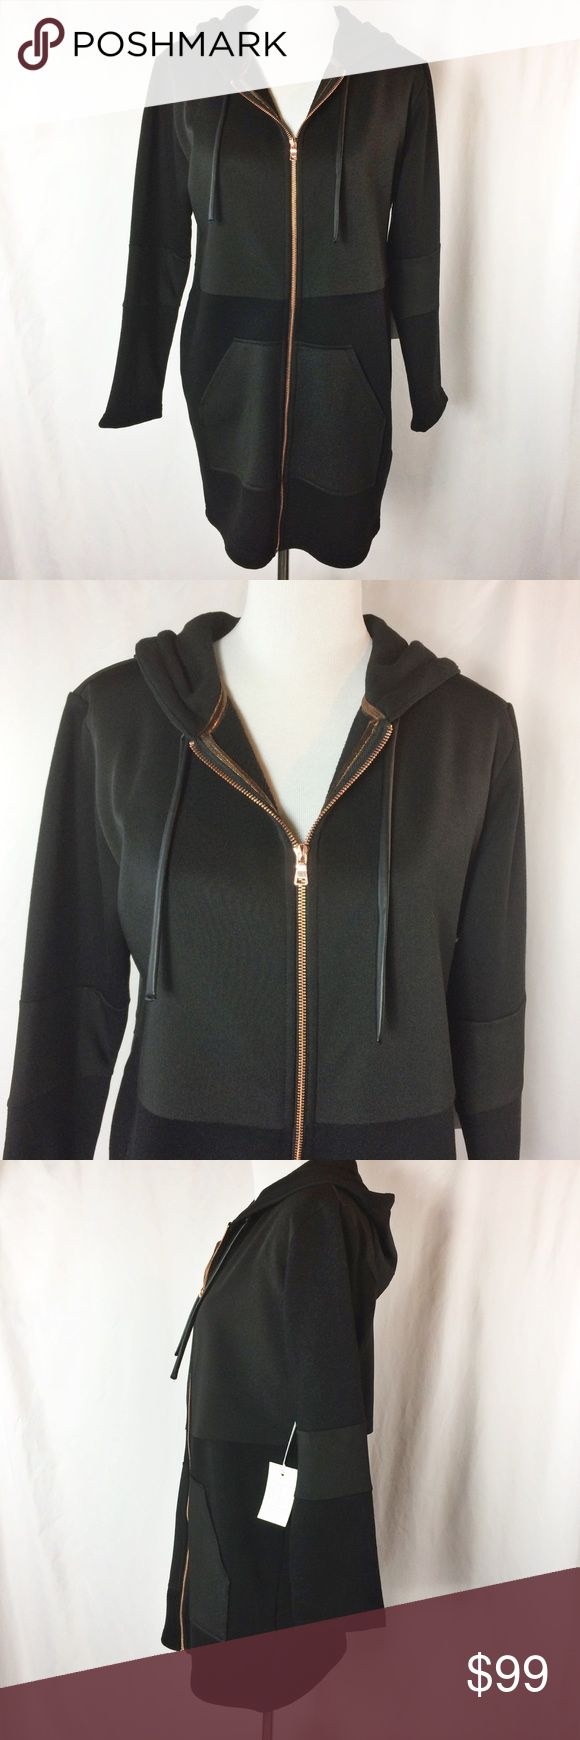 "Lime & Vine Brooklyn Rose Gold Zip Up Hoodie Fantastic oversized, comfy hoodie with contrast scuba front pocket and rose gold zipper detail.  Bust ~38"" Sleeve ~22"" Length ~33""  Main Fabric 51% Cotton 49% Polyester  Secondary Fabric 90% Polyester 10% Elastane  Machine Wash/Lay Flat  Thank you for looking!  May require pressing or steaming upon arrival Lime & Vine Tops Sweatshirts & Hoodies"